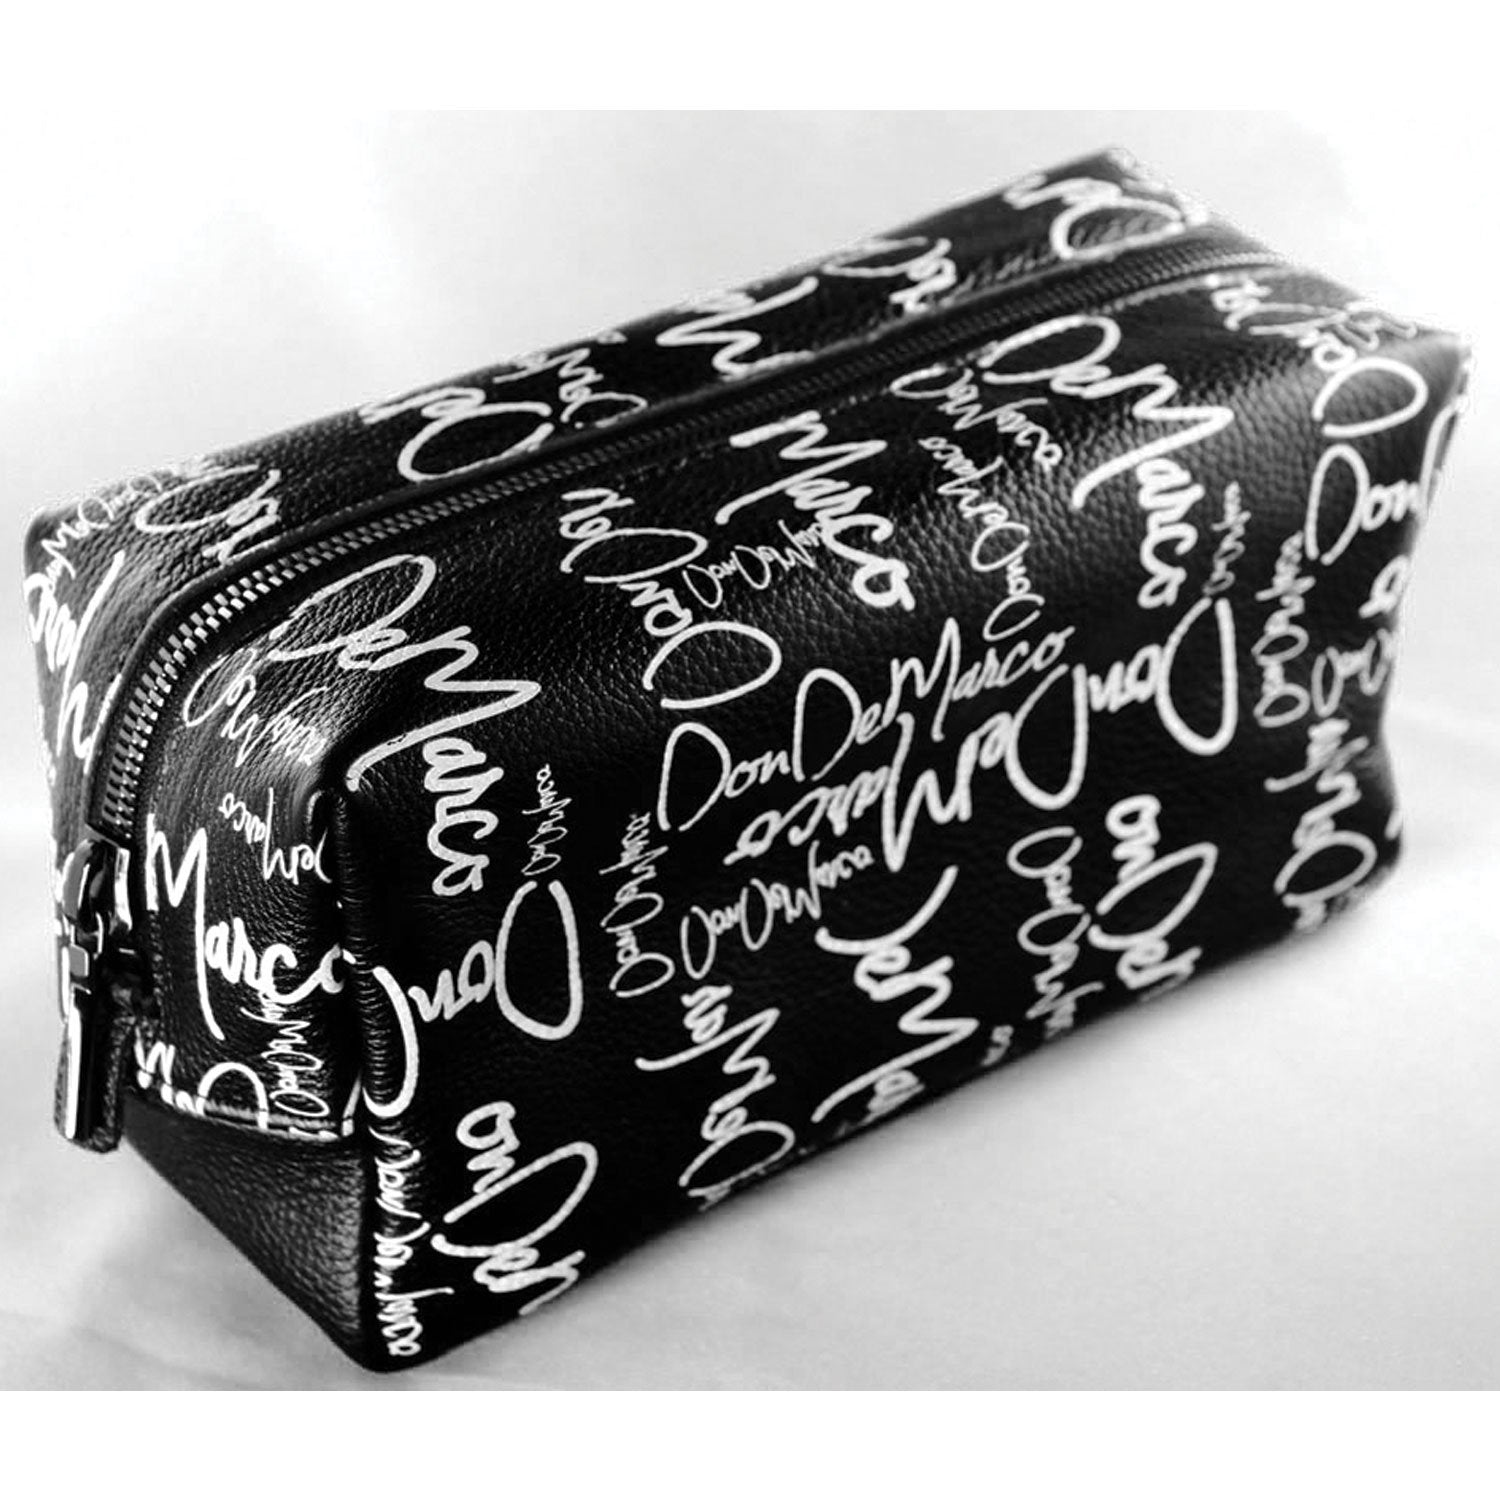 DonDeMarco monogram toiletry bag